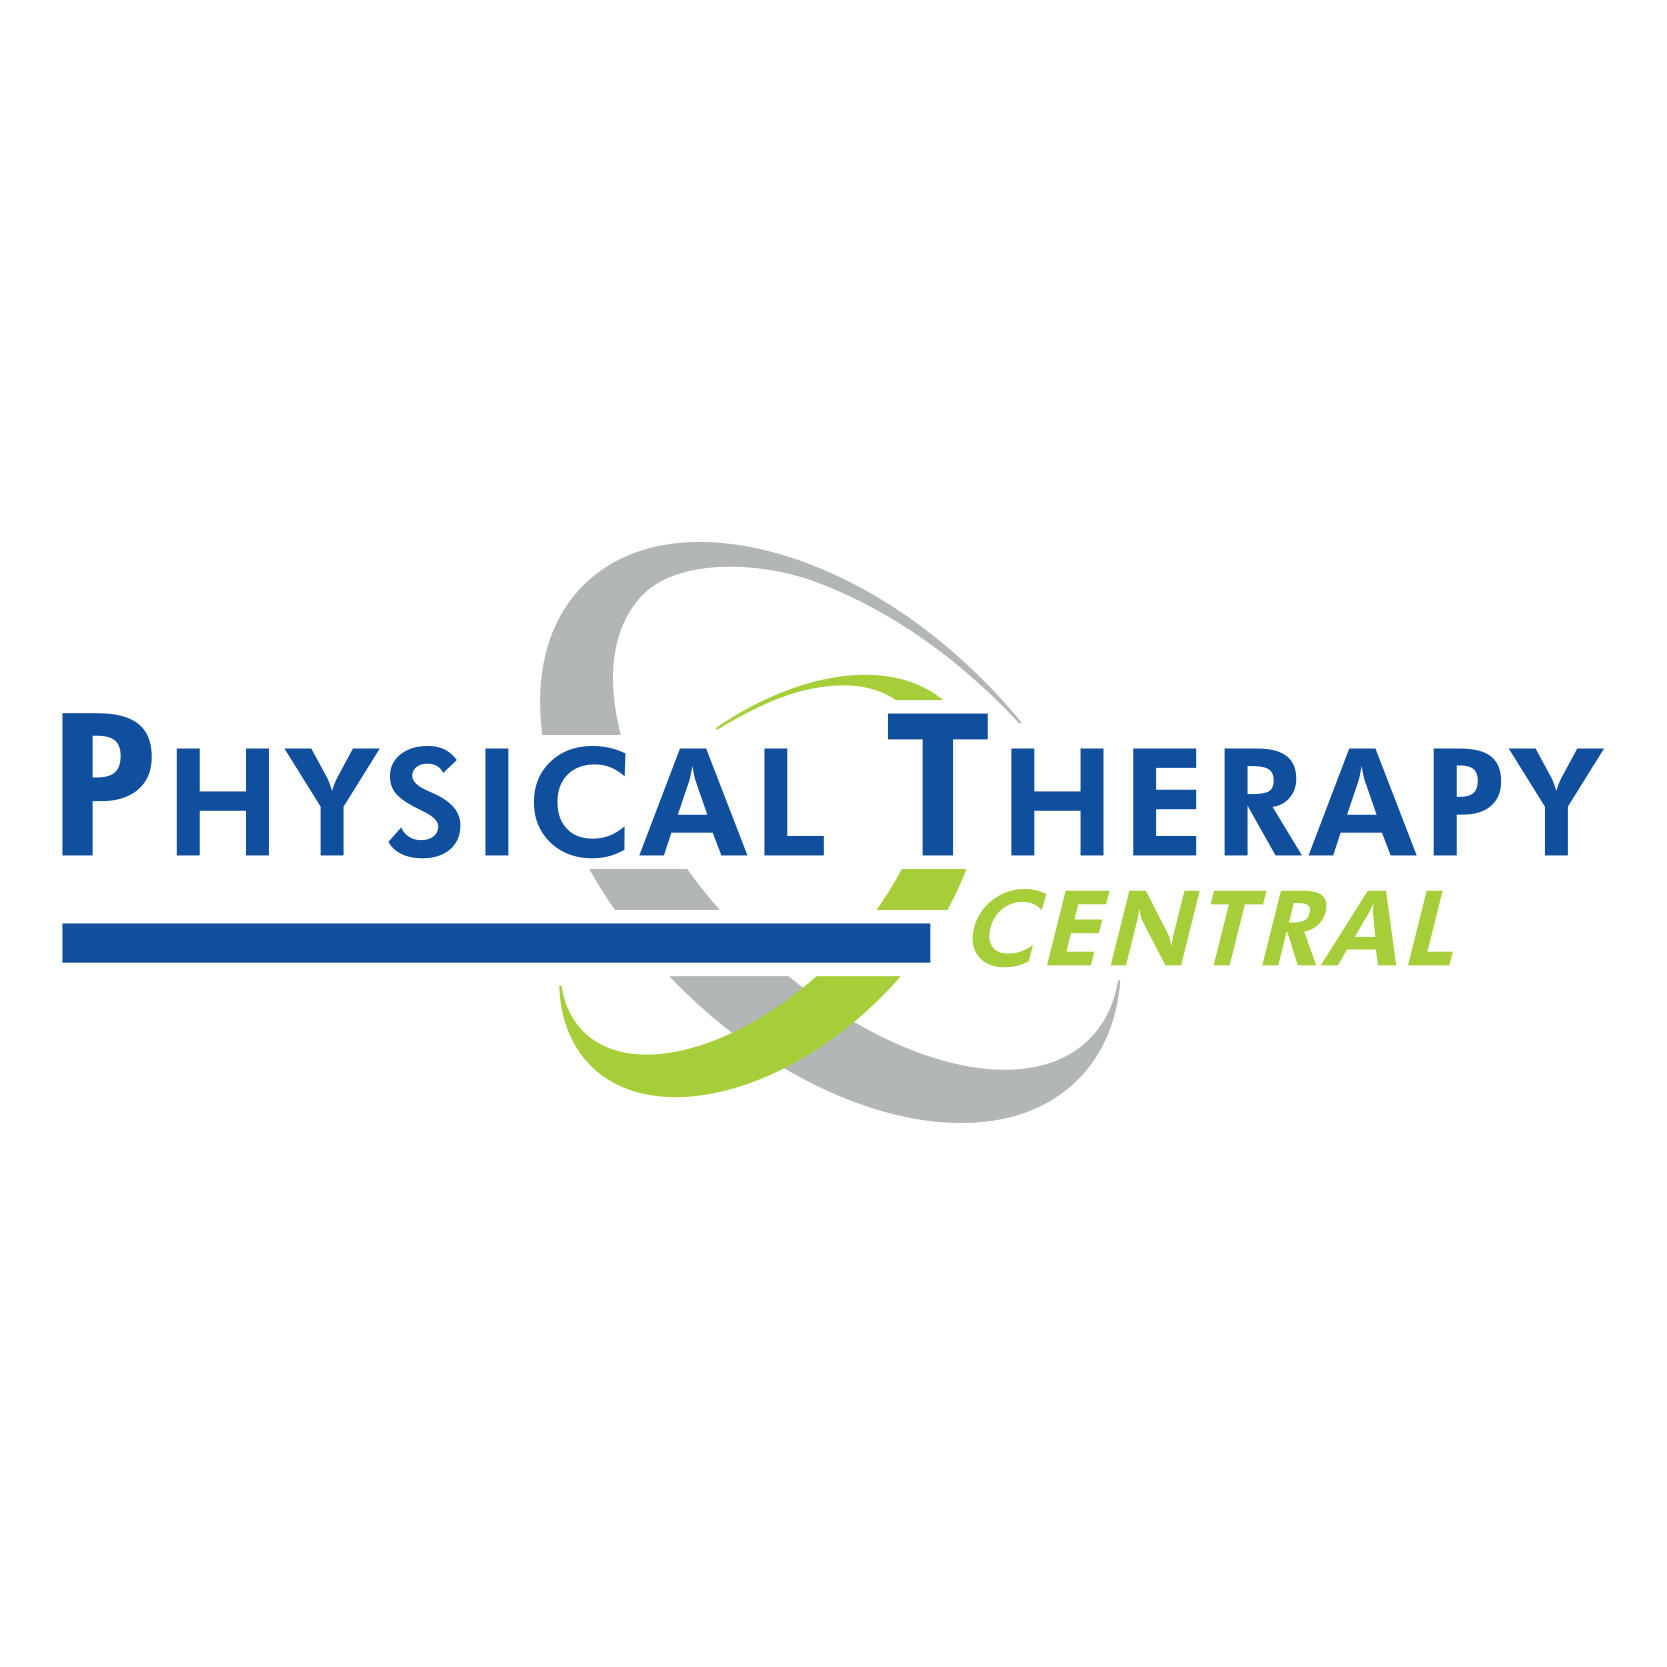 Physical Therapy Central image 3